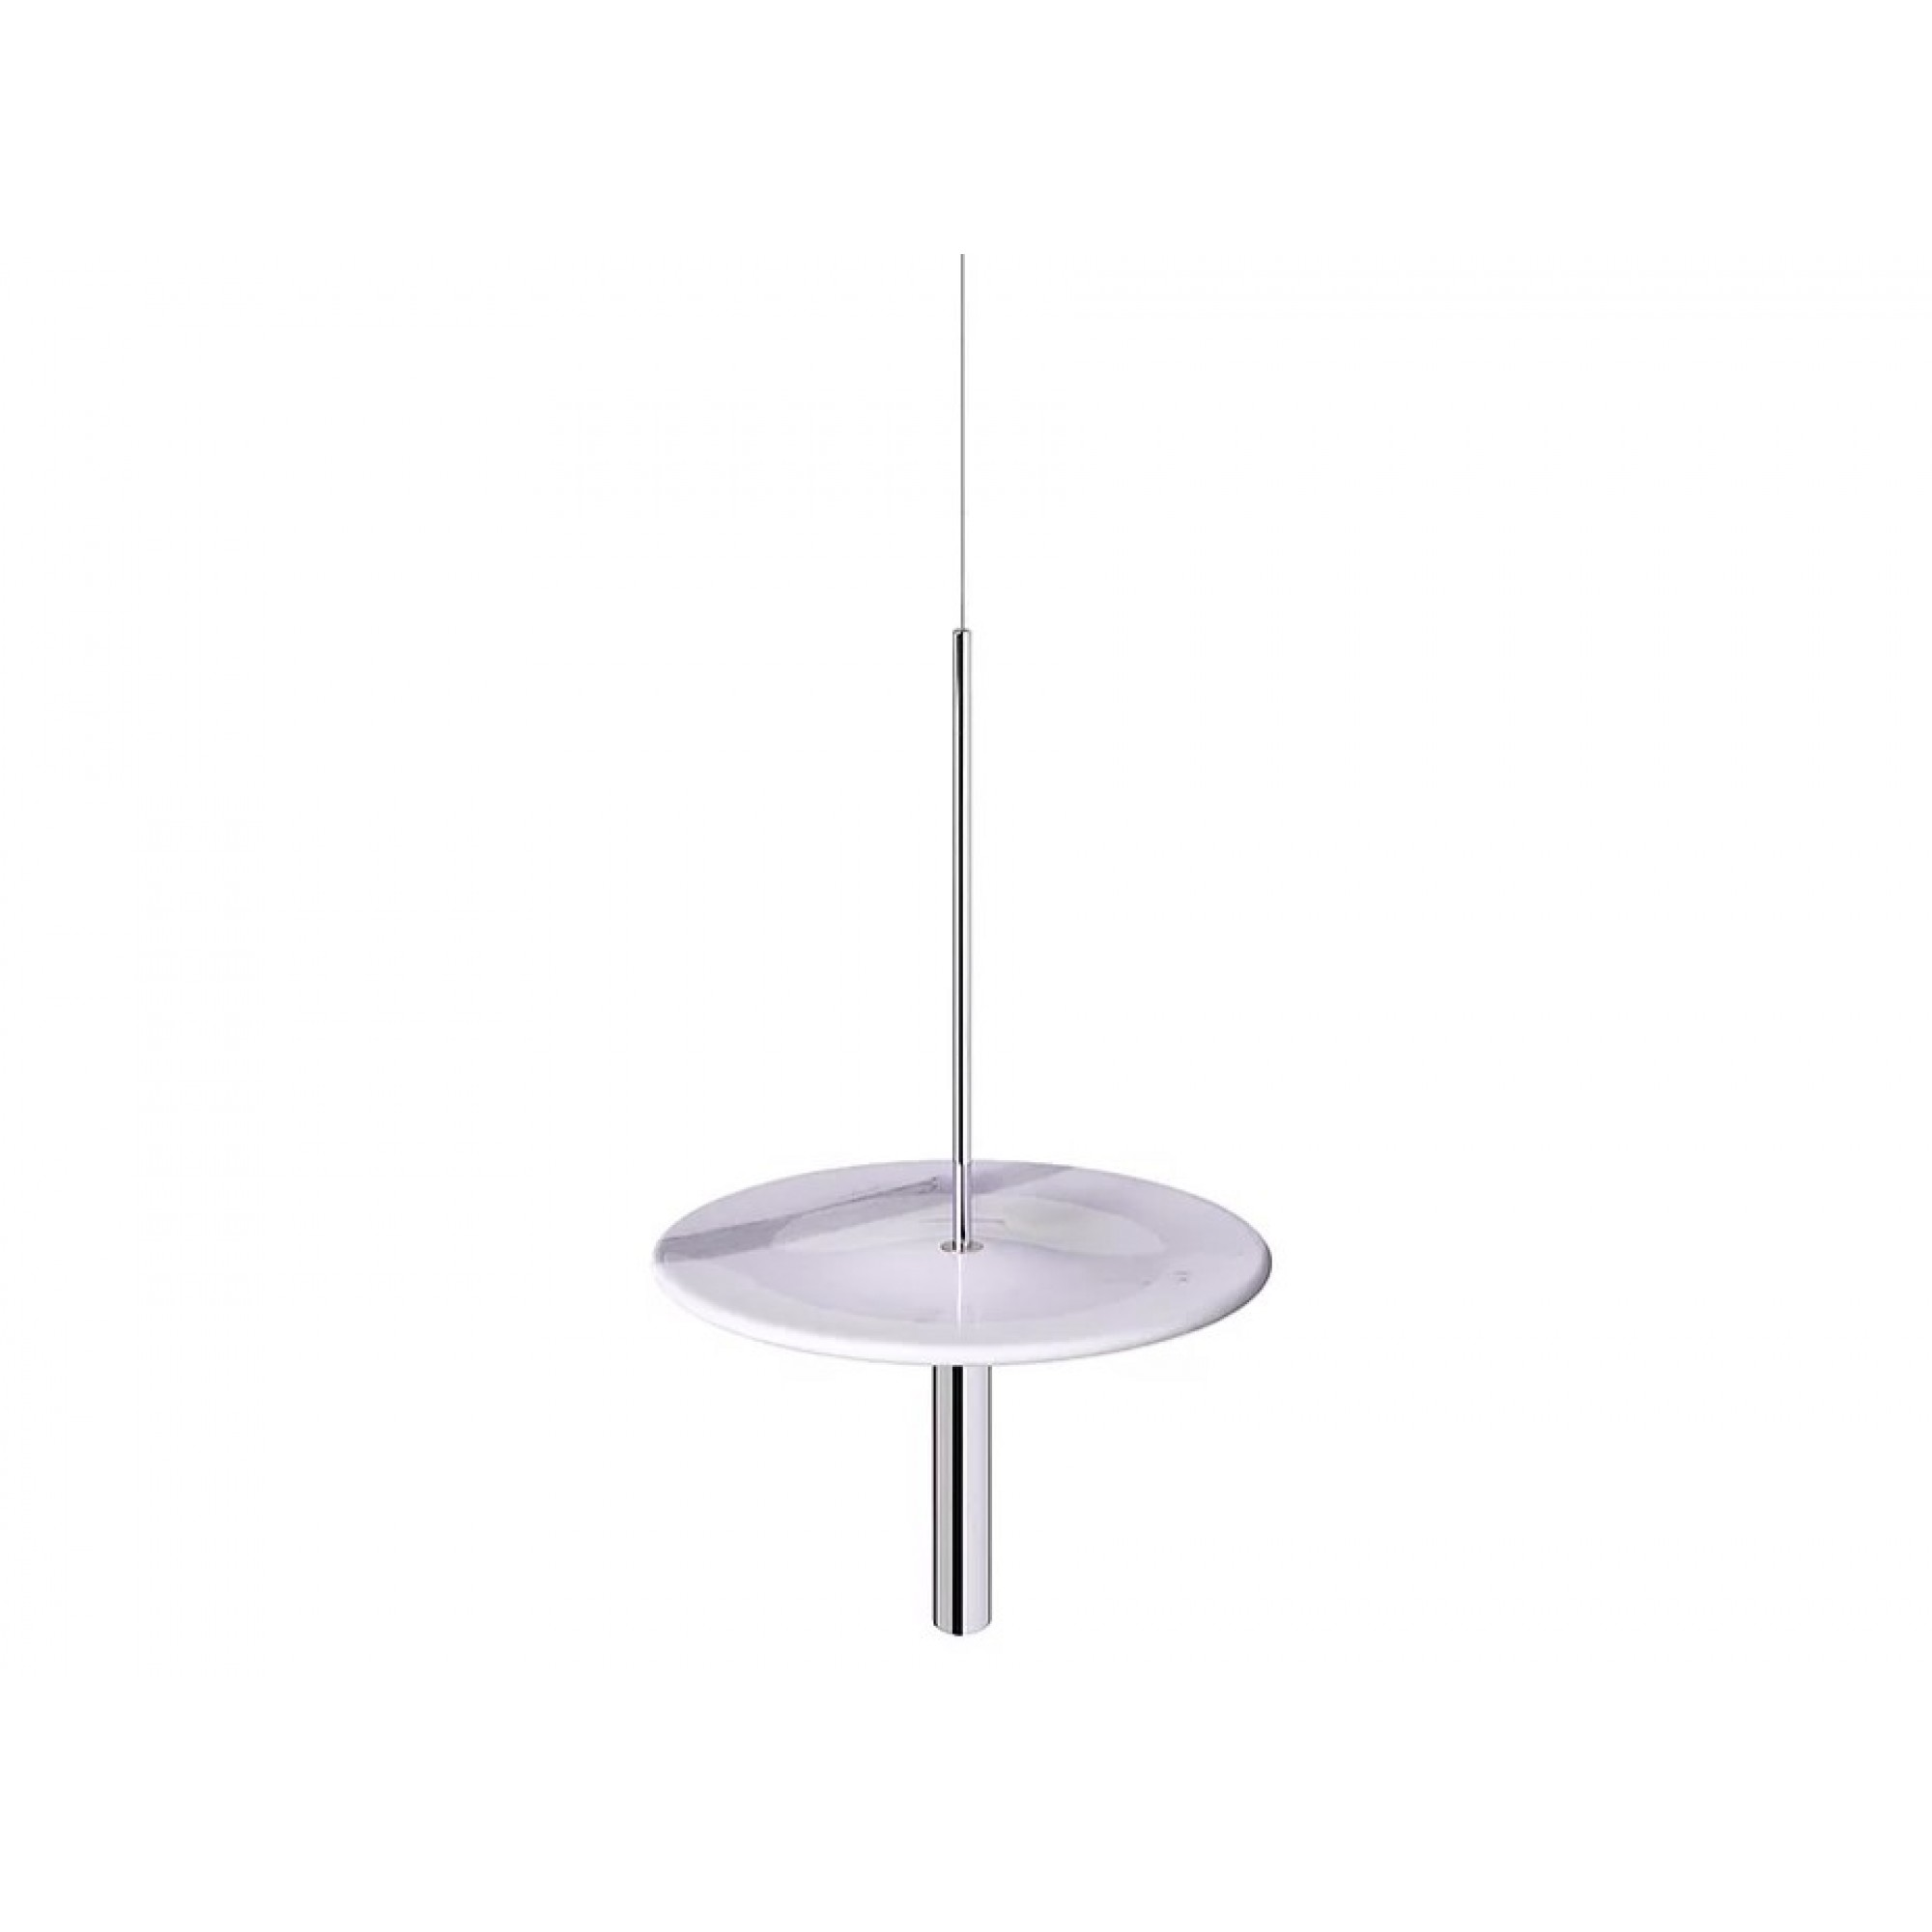 Circulum decorative table, suspended from the ceiling, White Marble and Chrom accessories